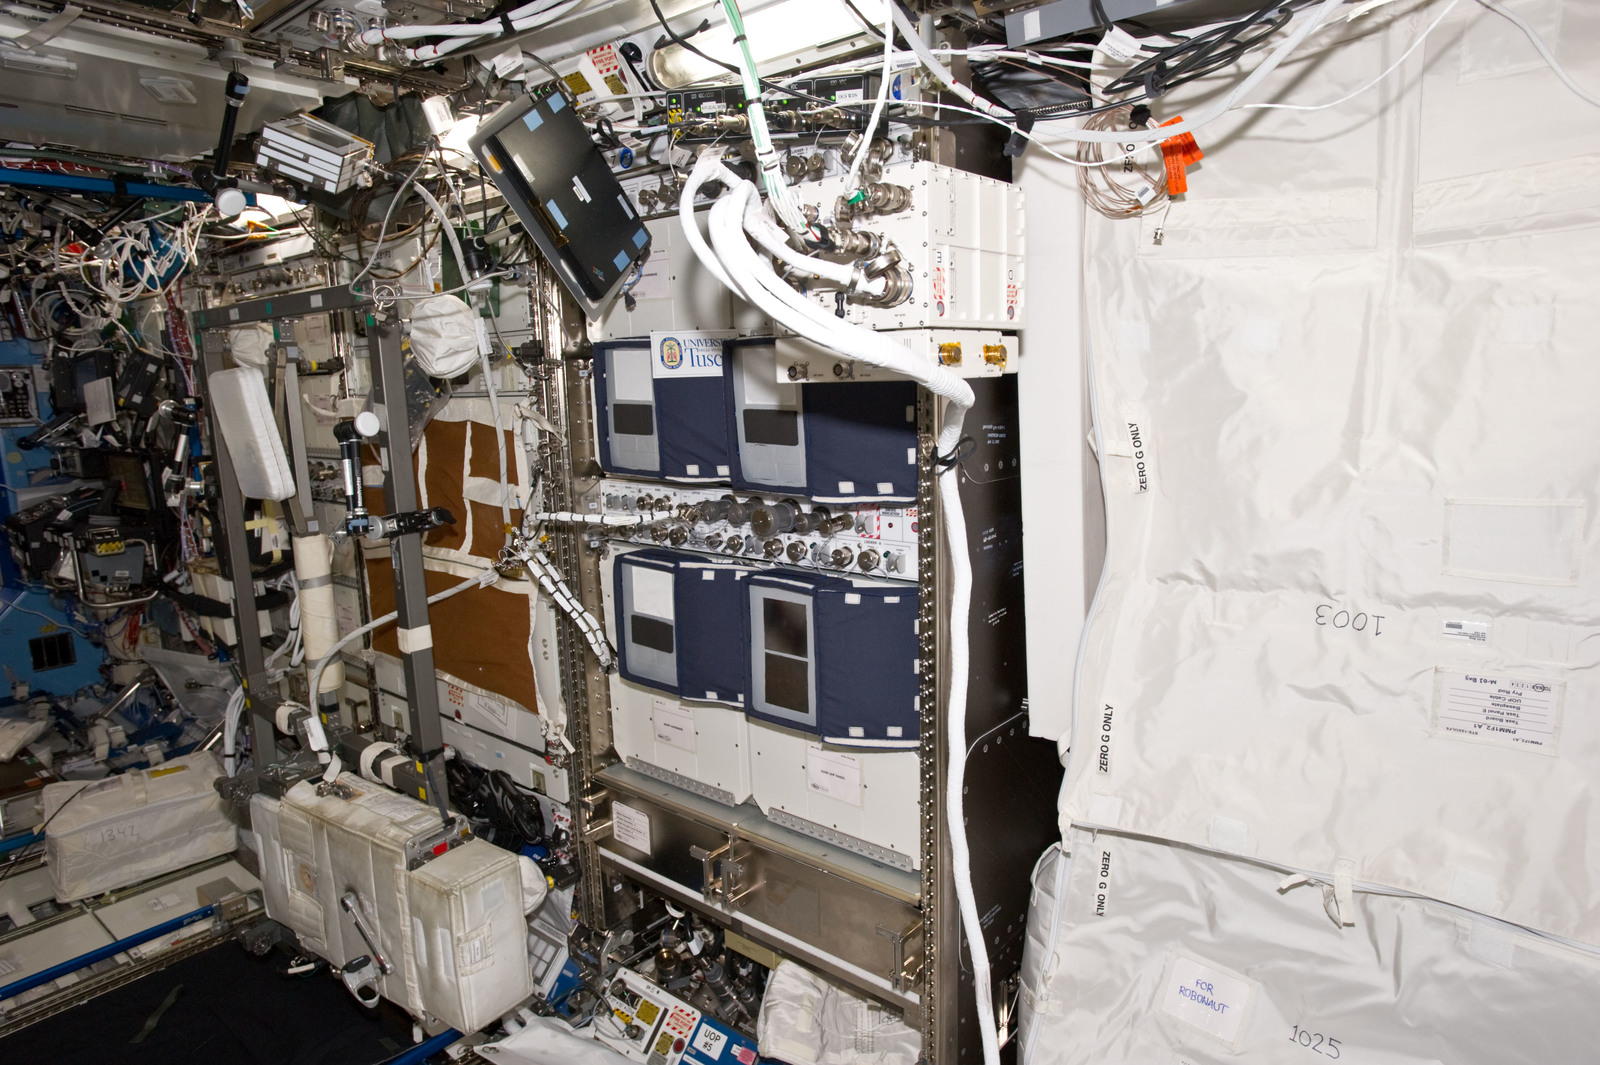 S134E007257 - STS-134 - View of the VIABLE ISS Experiment in the US Lab